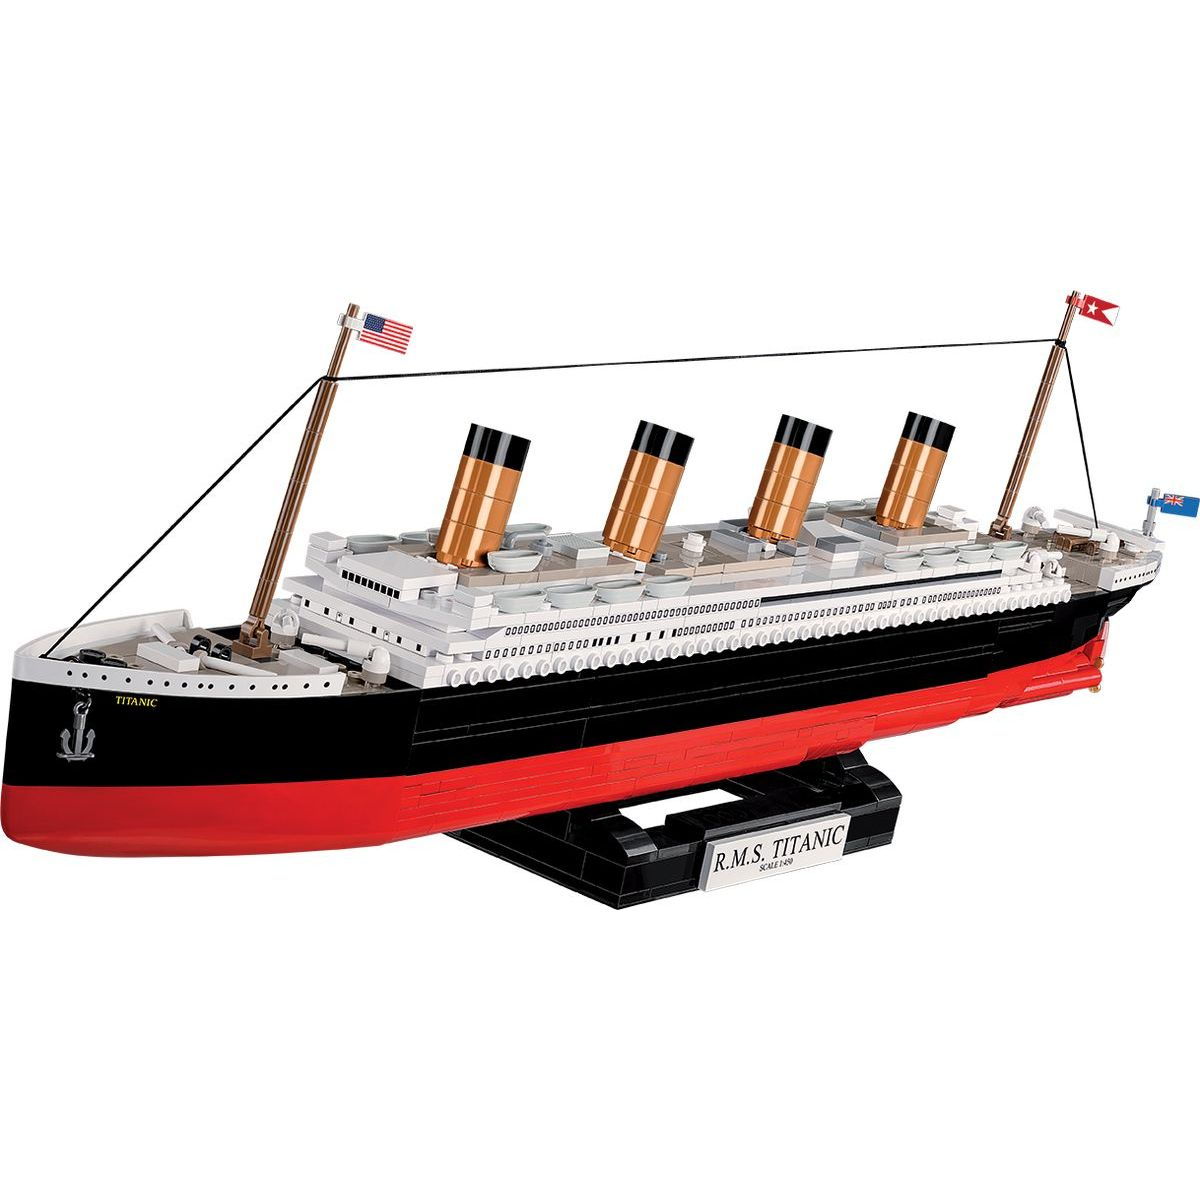 Cobi 1928 Smithsonian Titanic 1:450 executive edition